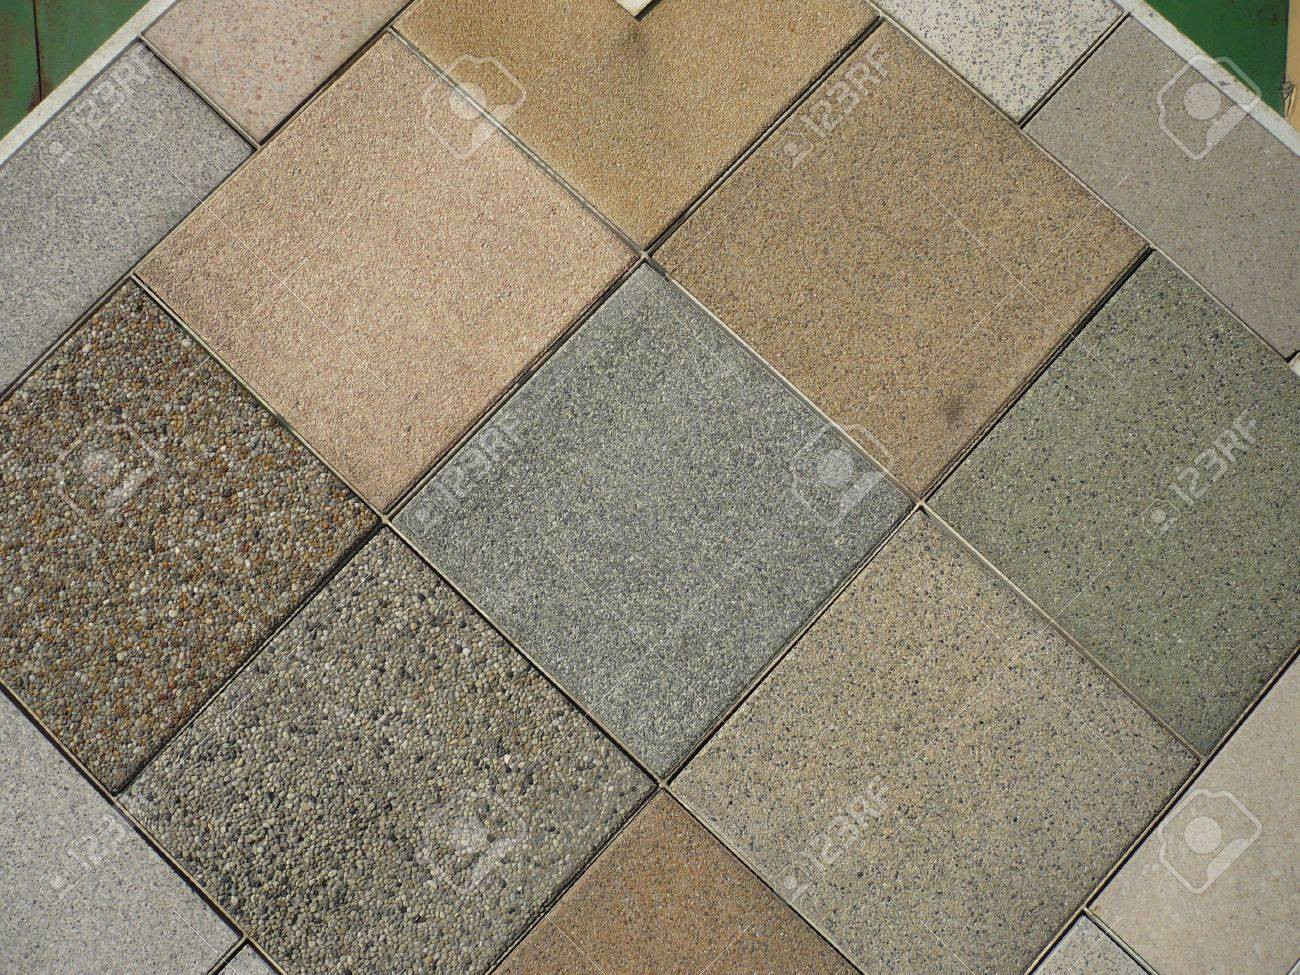 Cast Stone And Floor Tile Samples Stock Photo Picture And Royalty